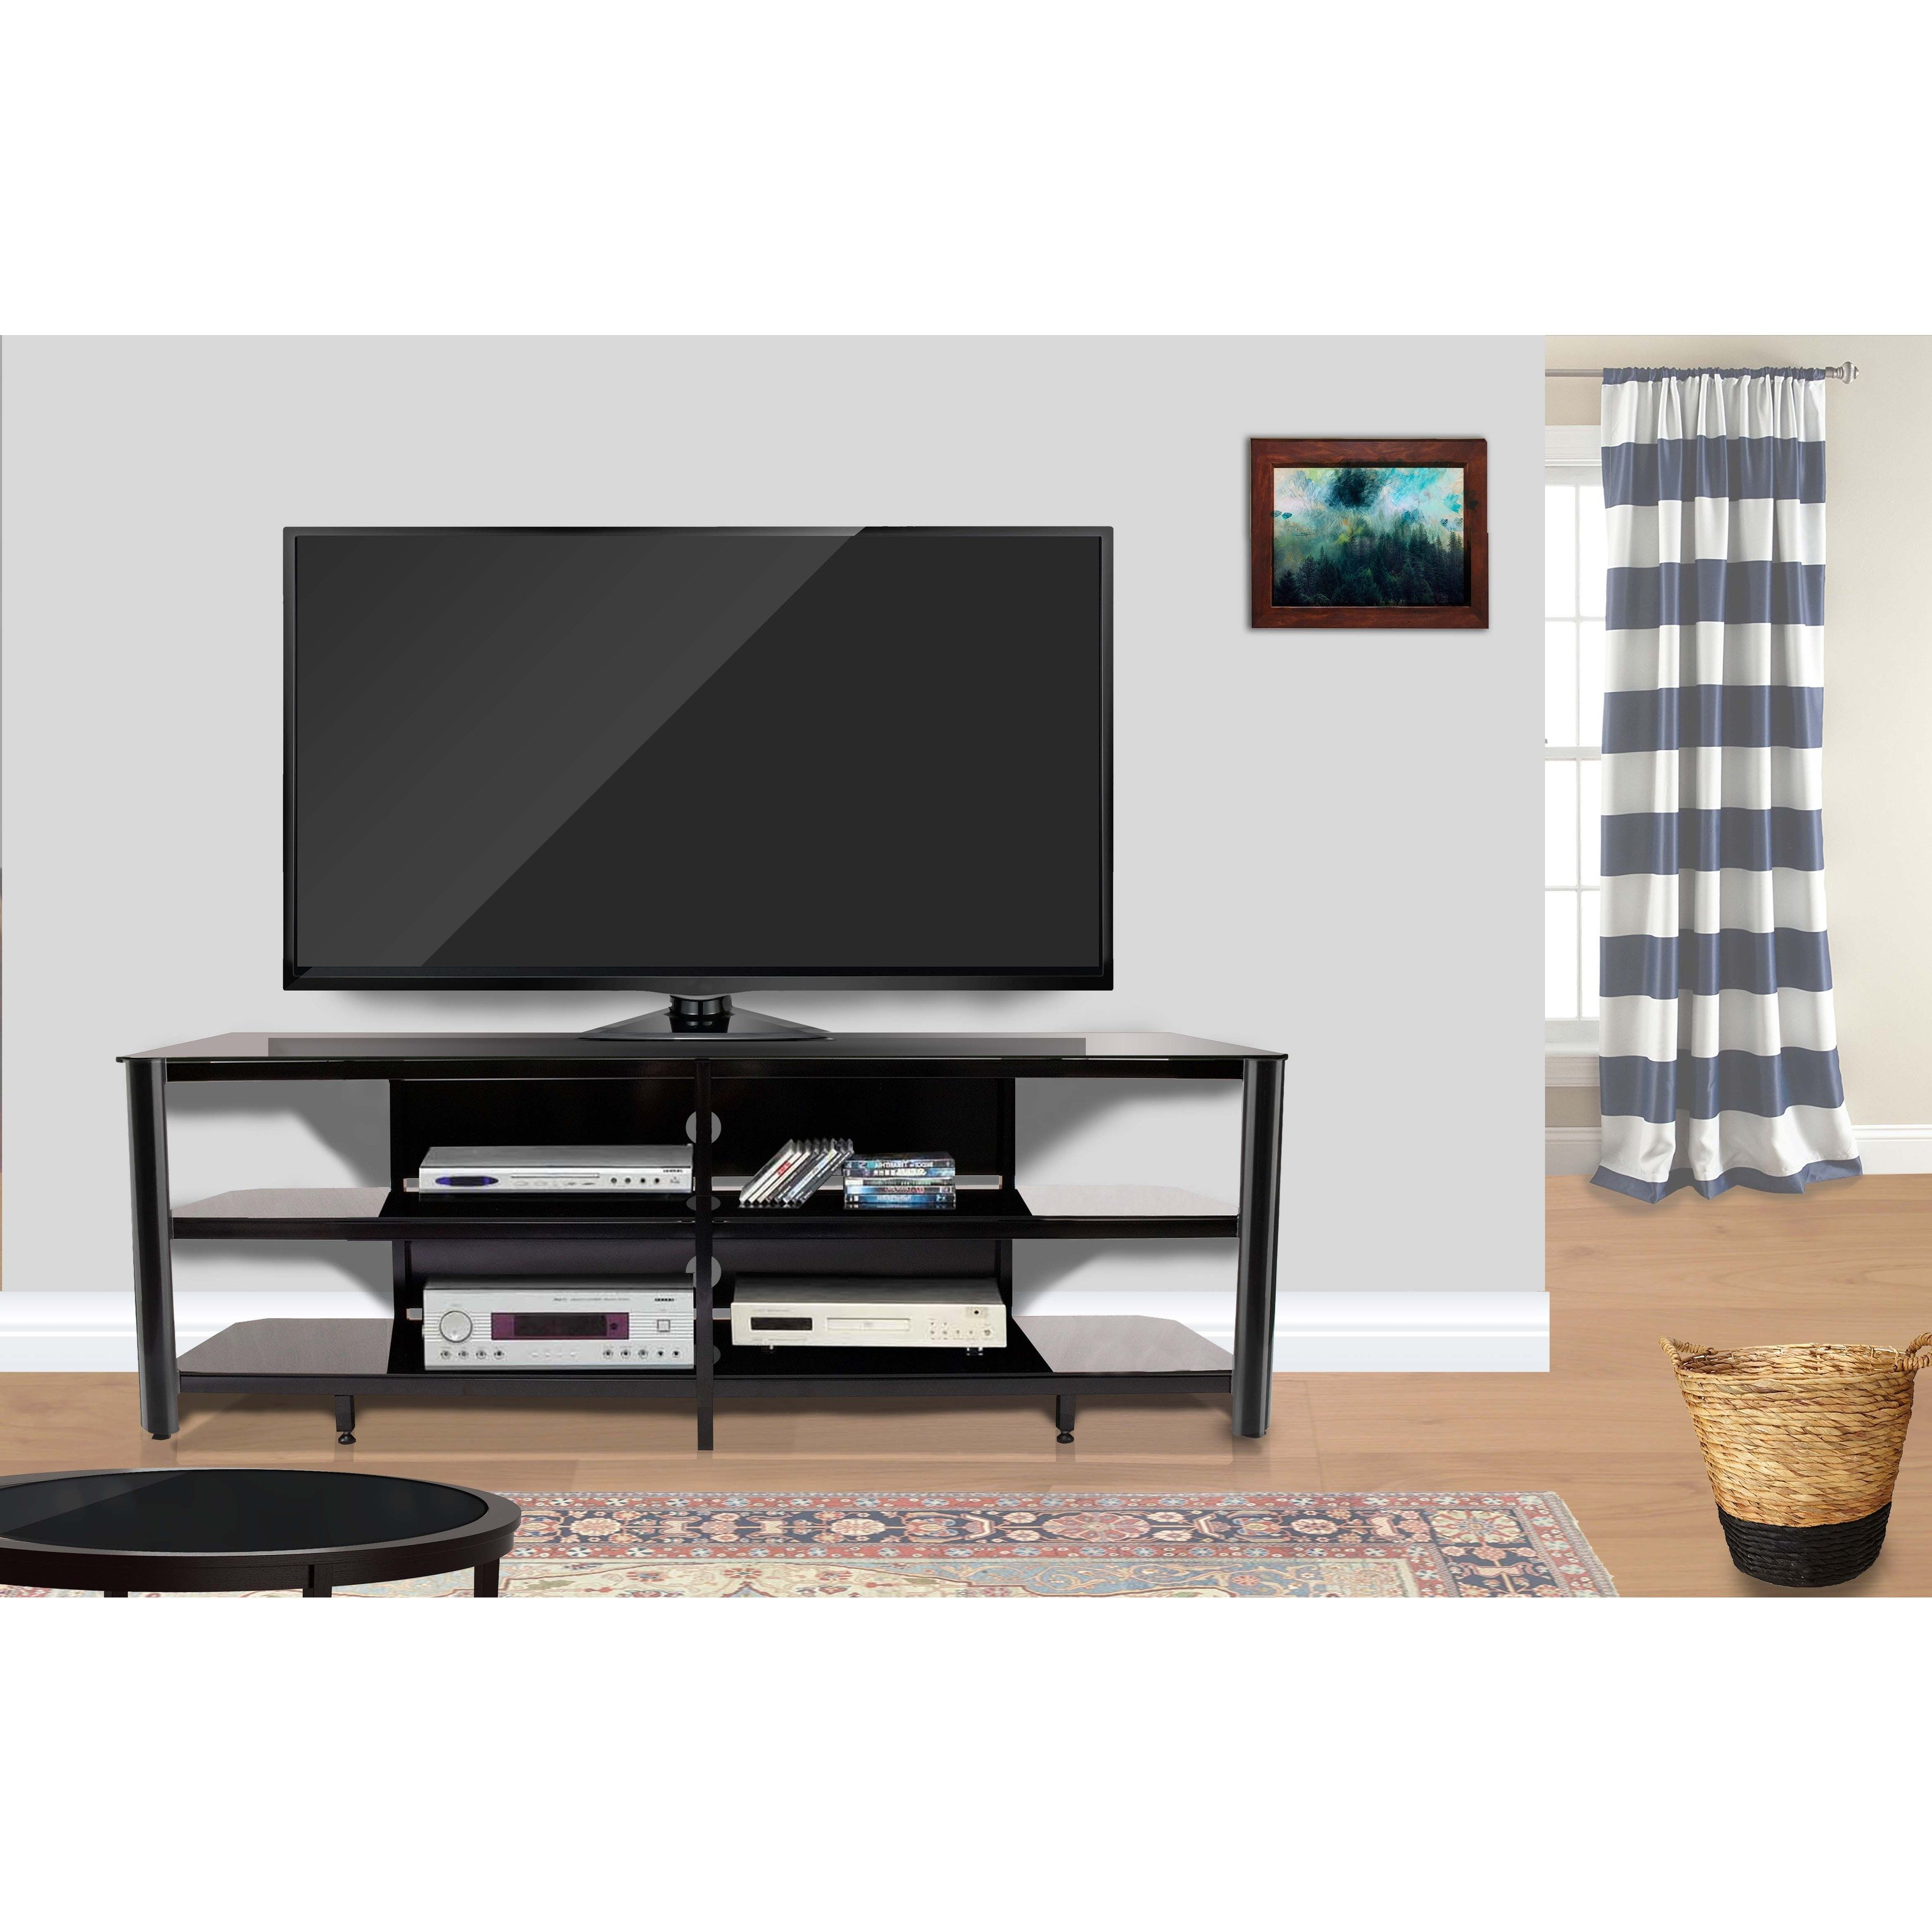 Shop Fold 'n' Snap Oxford 73 Inch Black Innovex Tv Stand – Free Regarding Oxford 60 Inch Tv Stands (Gallery 4 of 20)